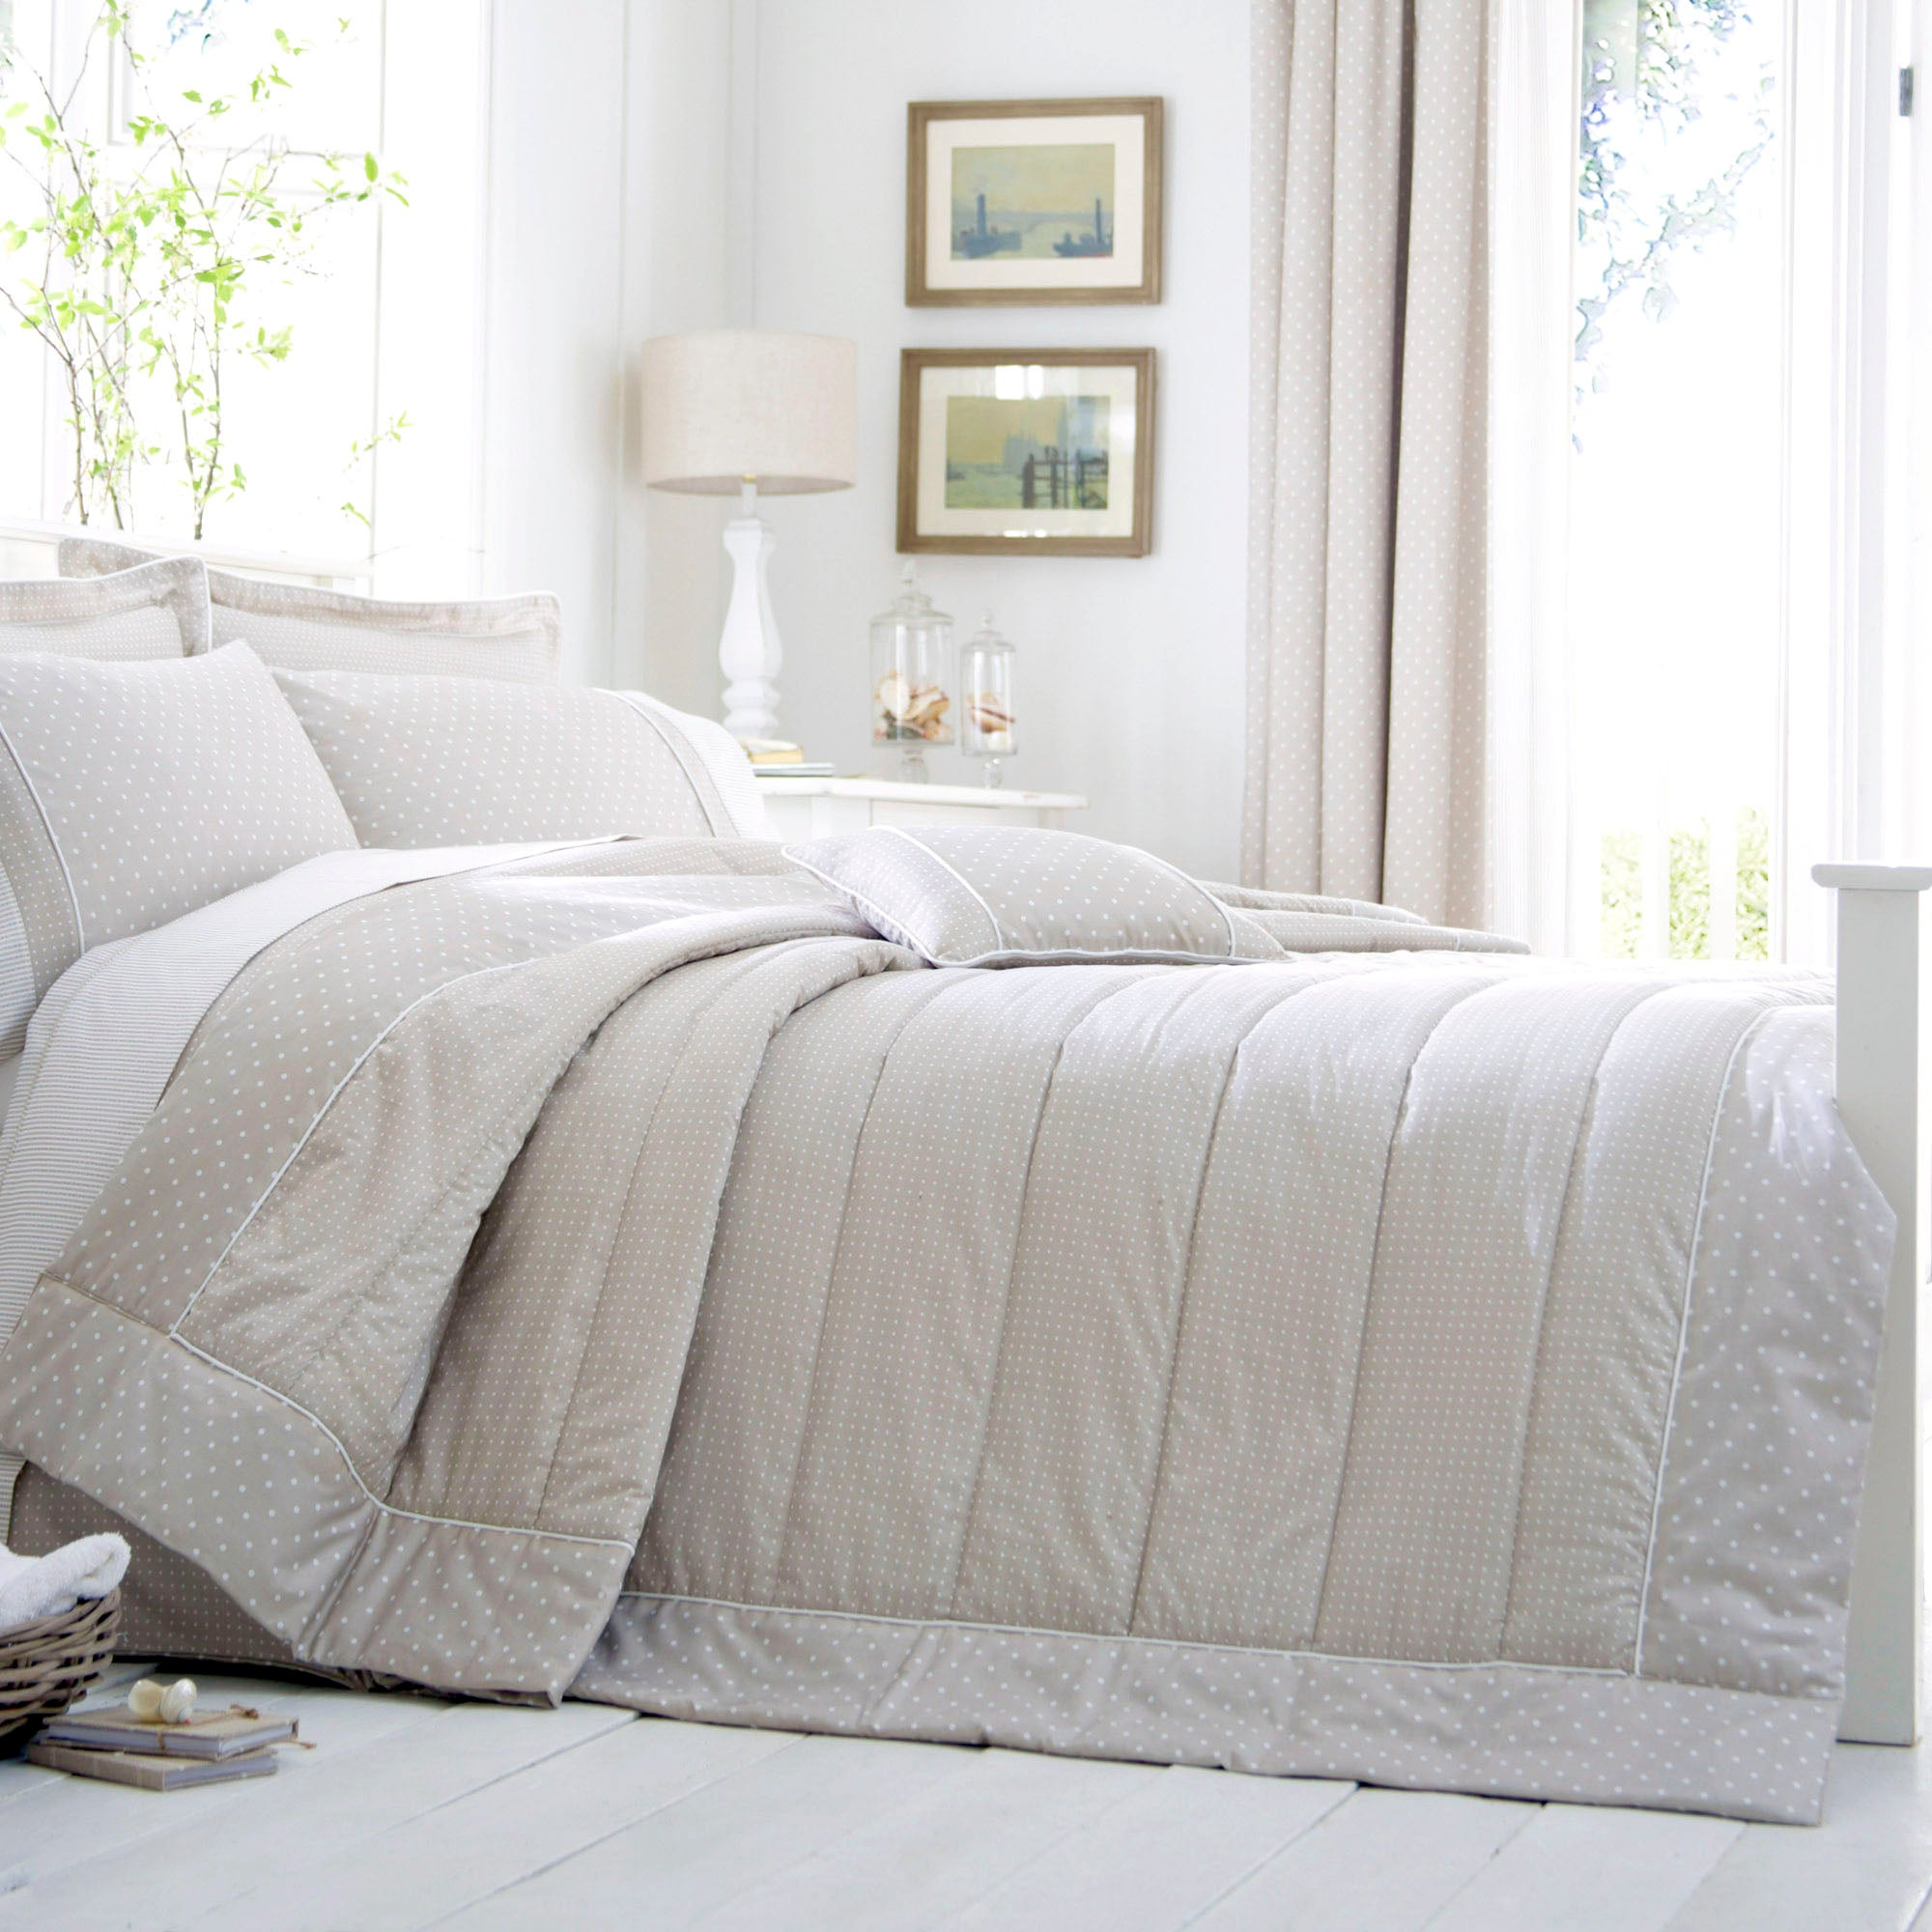 Dorma Mink Capri Collection Quilted Throw